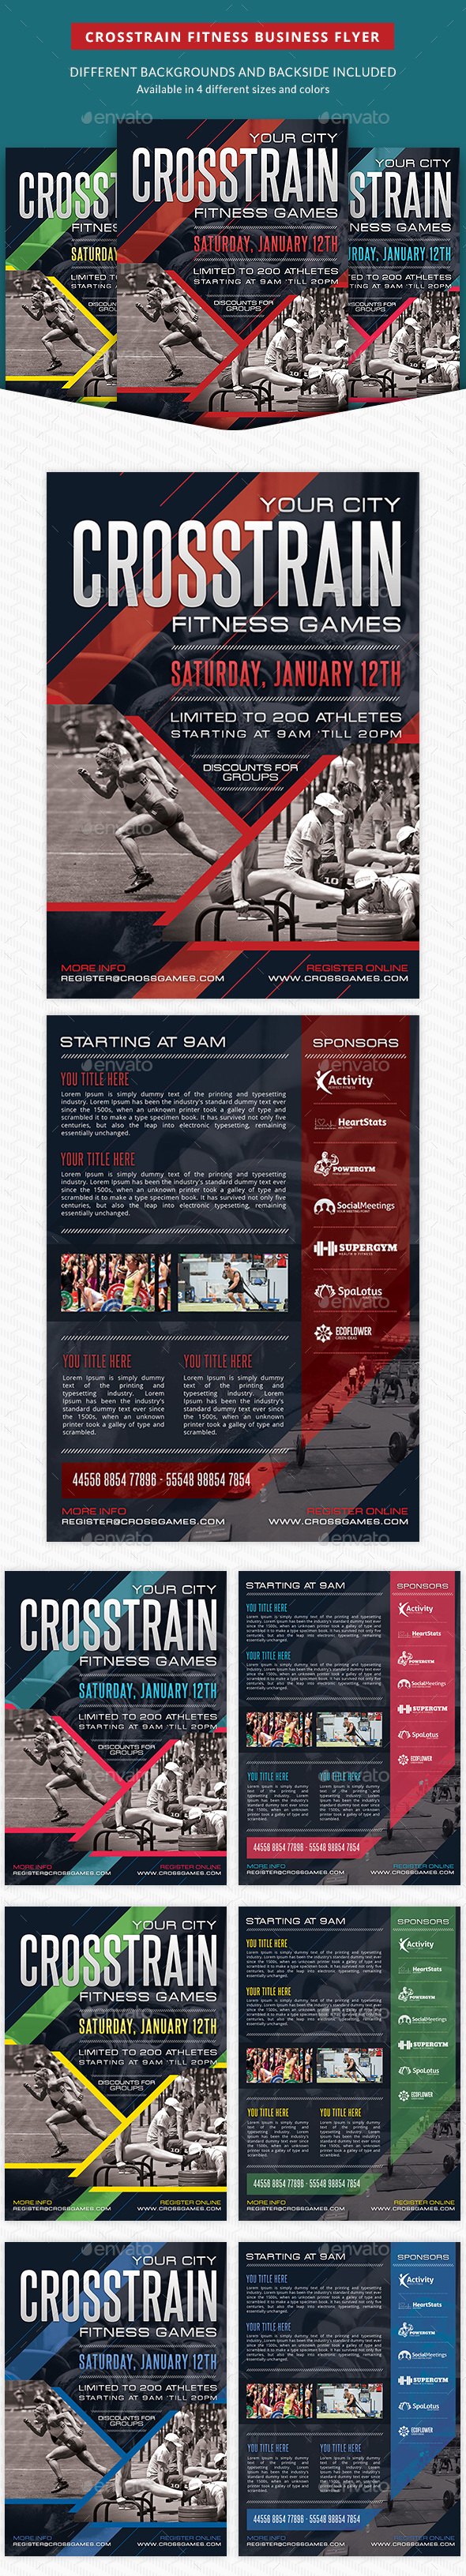 Crosstrain Fitness Gym Promotion Flyer